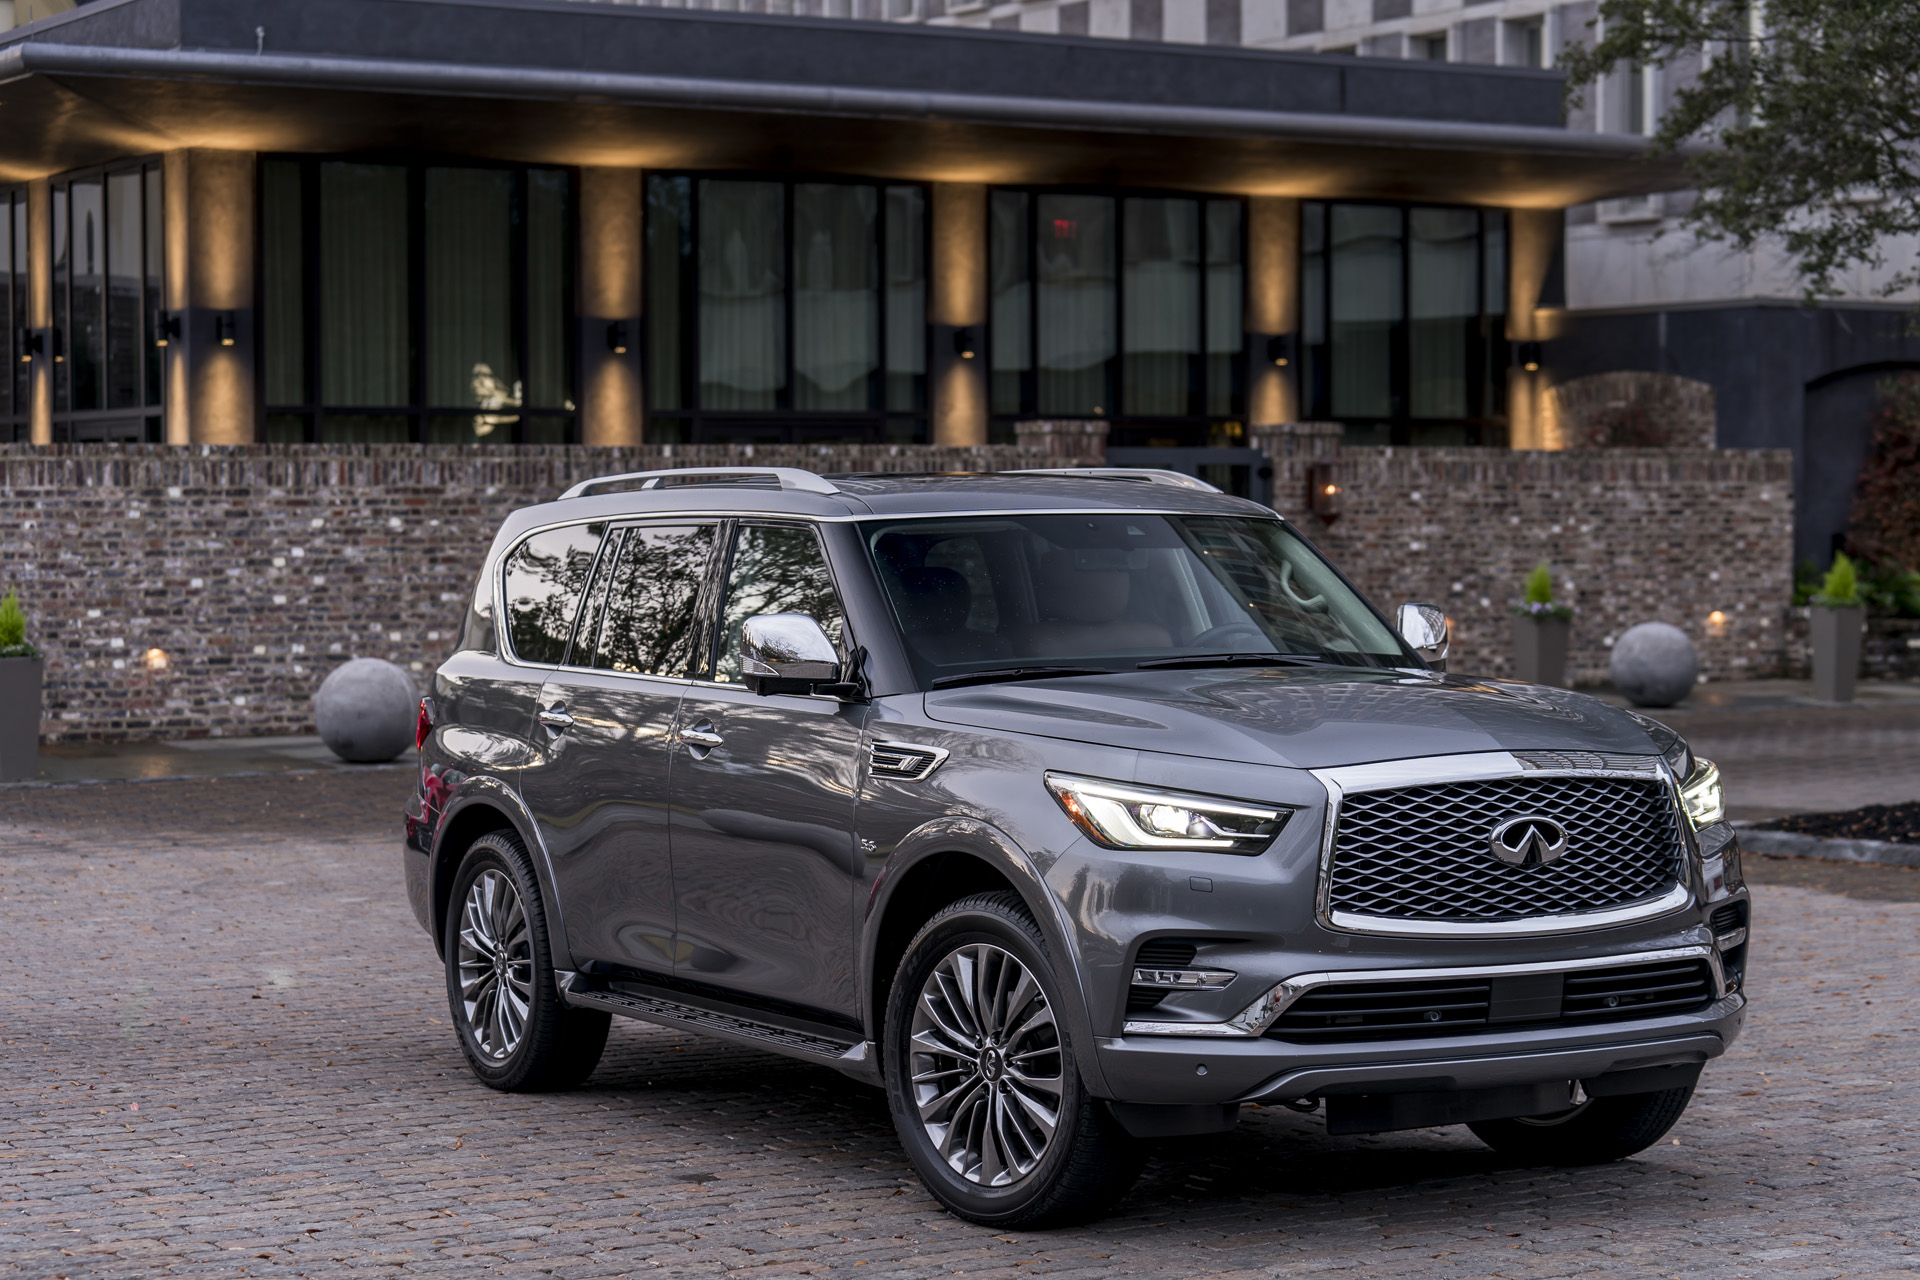 2018 infiniti qx80 first drive review age is more than a number. Black Bedroom Furniture Sets. Home Design Ideas